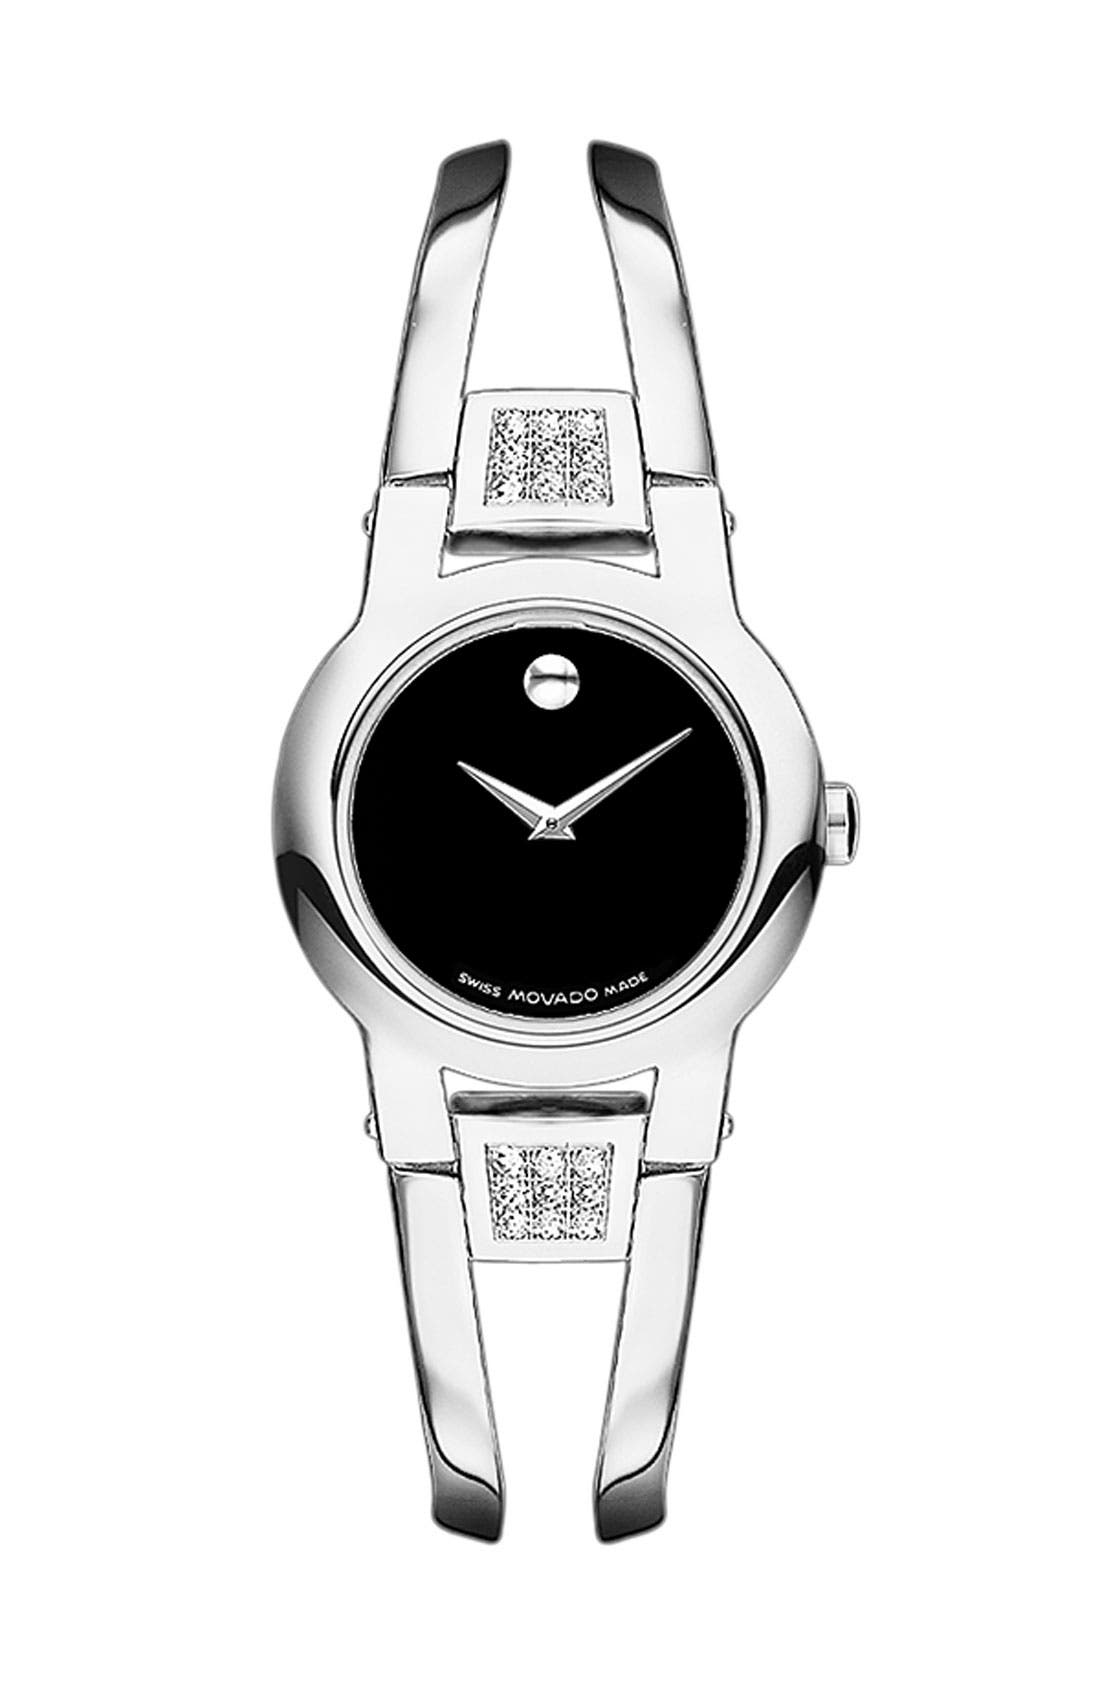 Movado 'Amorosa' Bracelet Watch, 24mm (Regular Retail Price: $995.00)